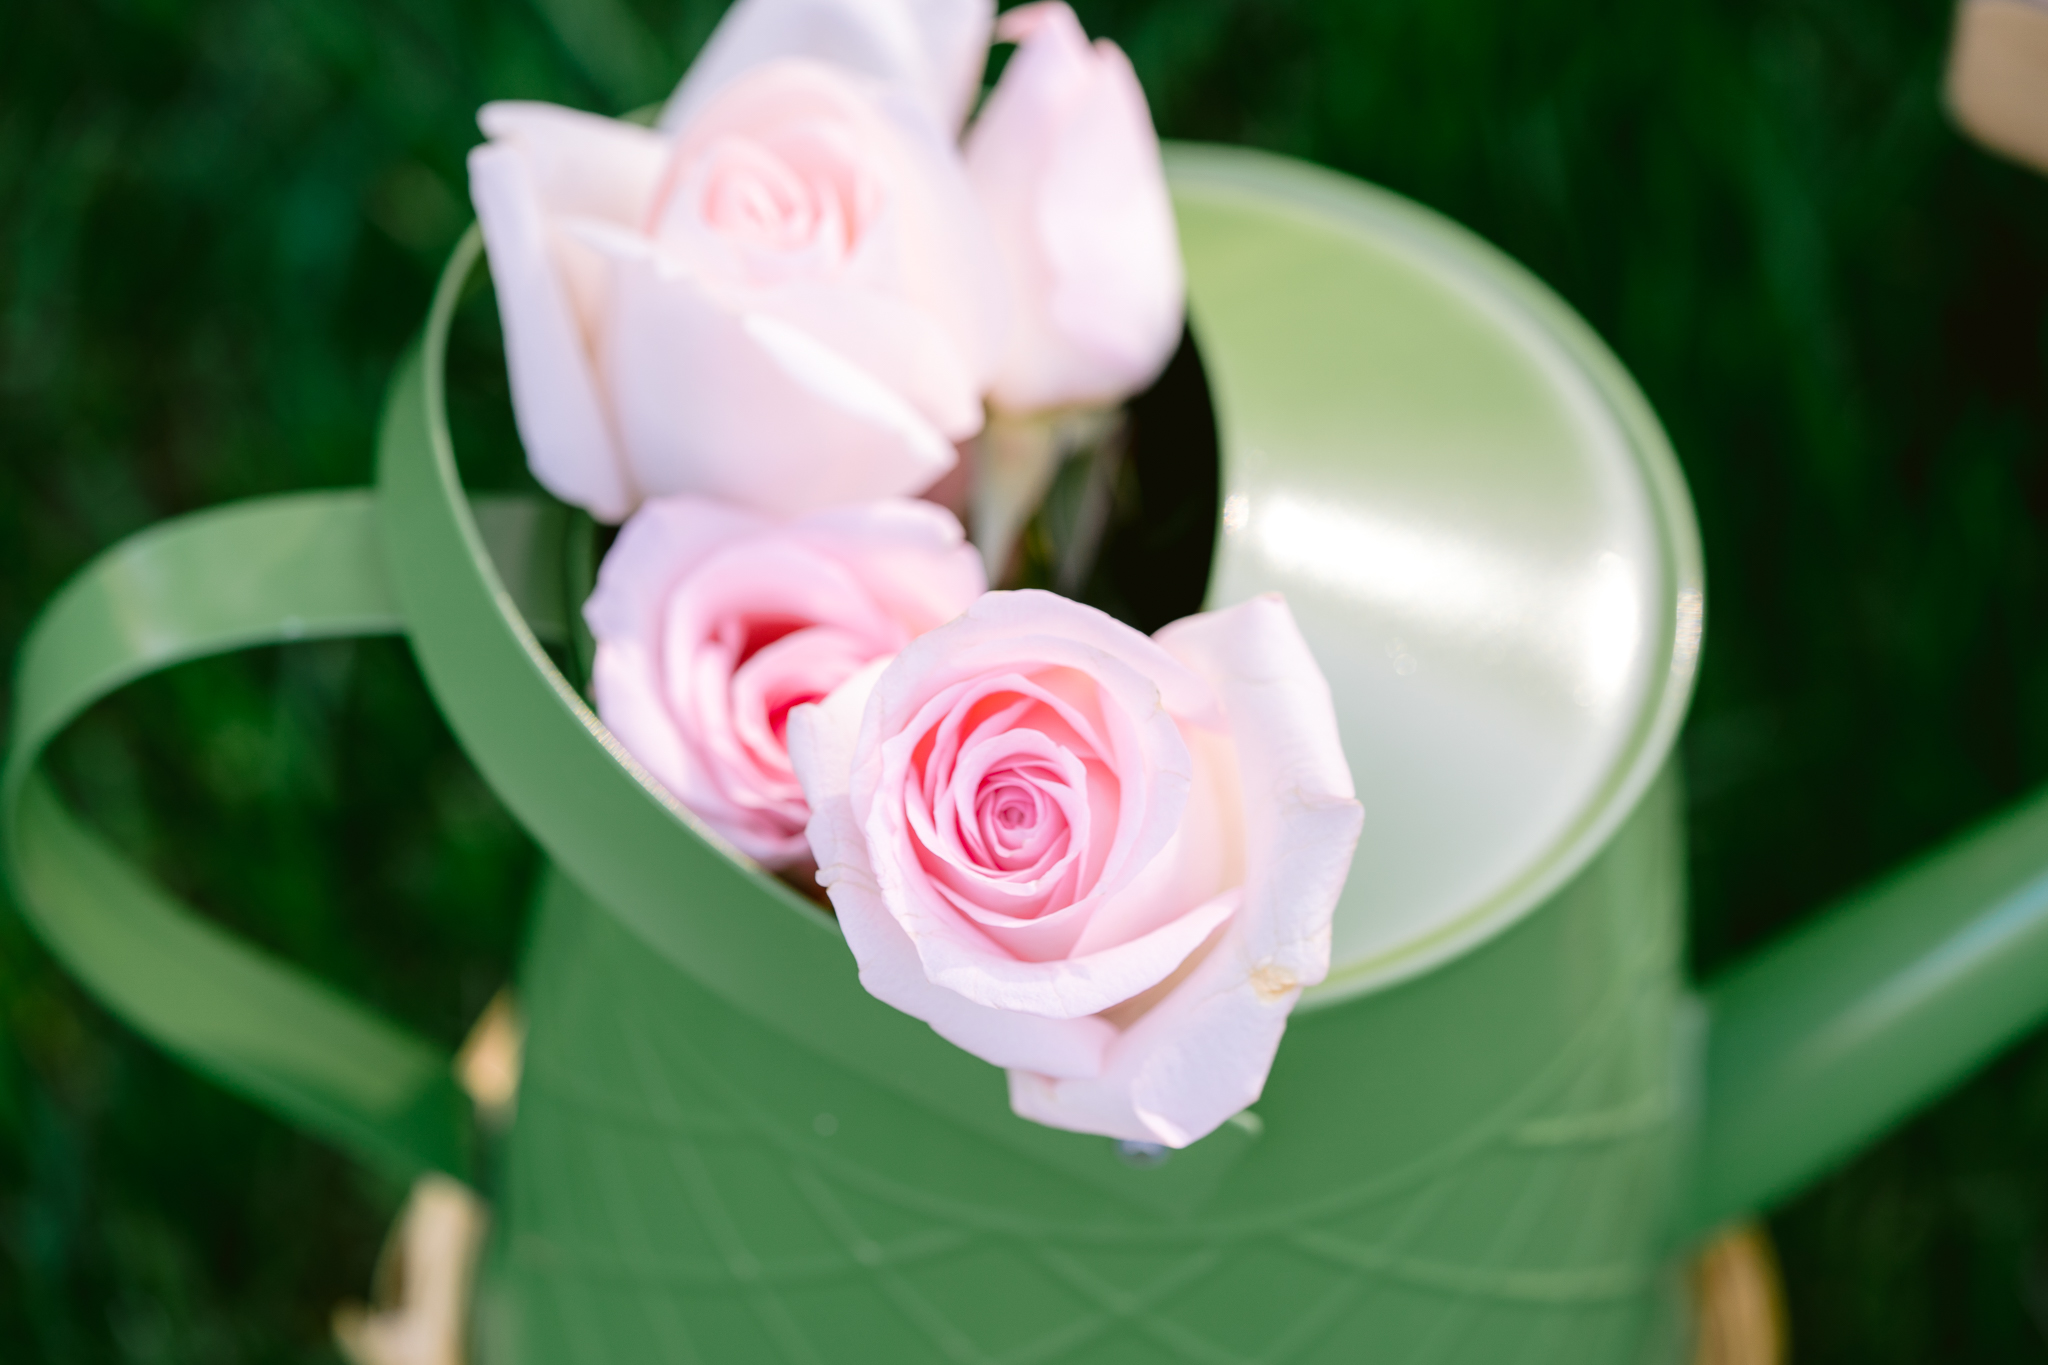 Can of roses, flowers